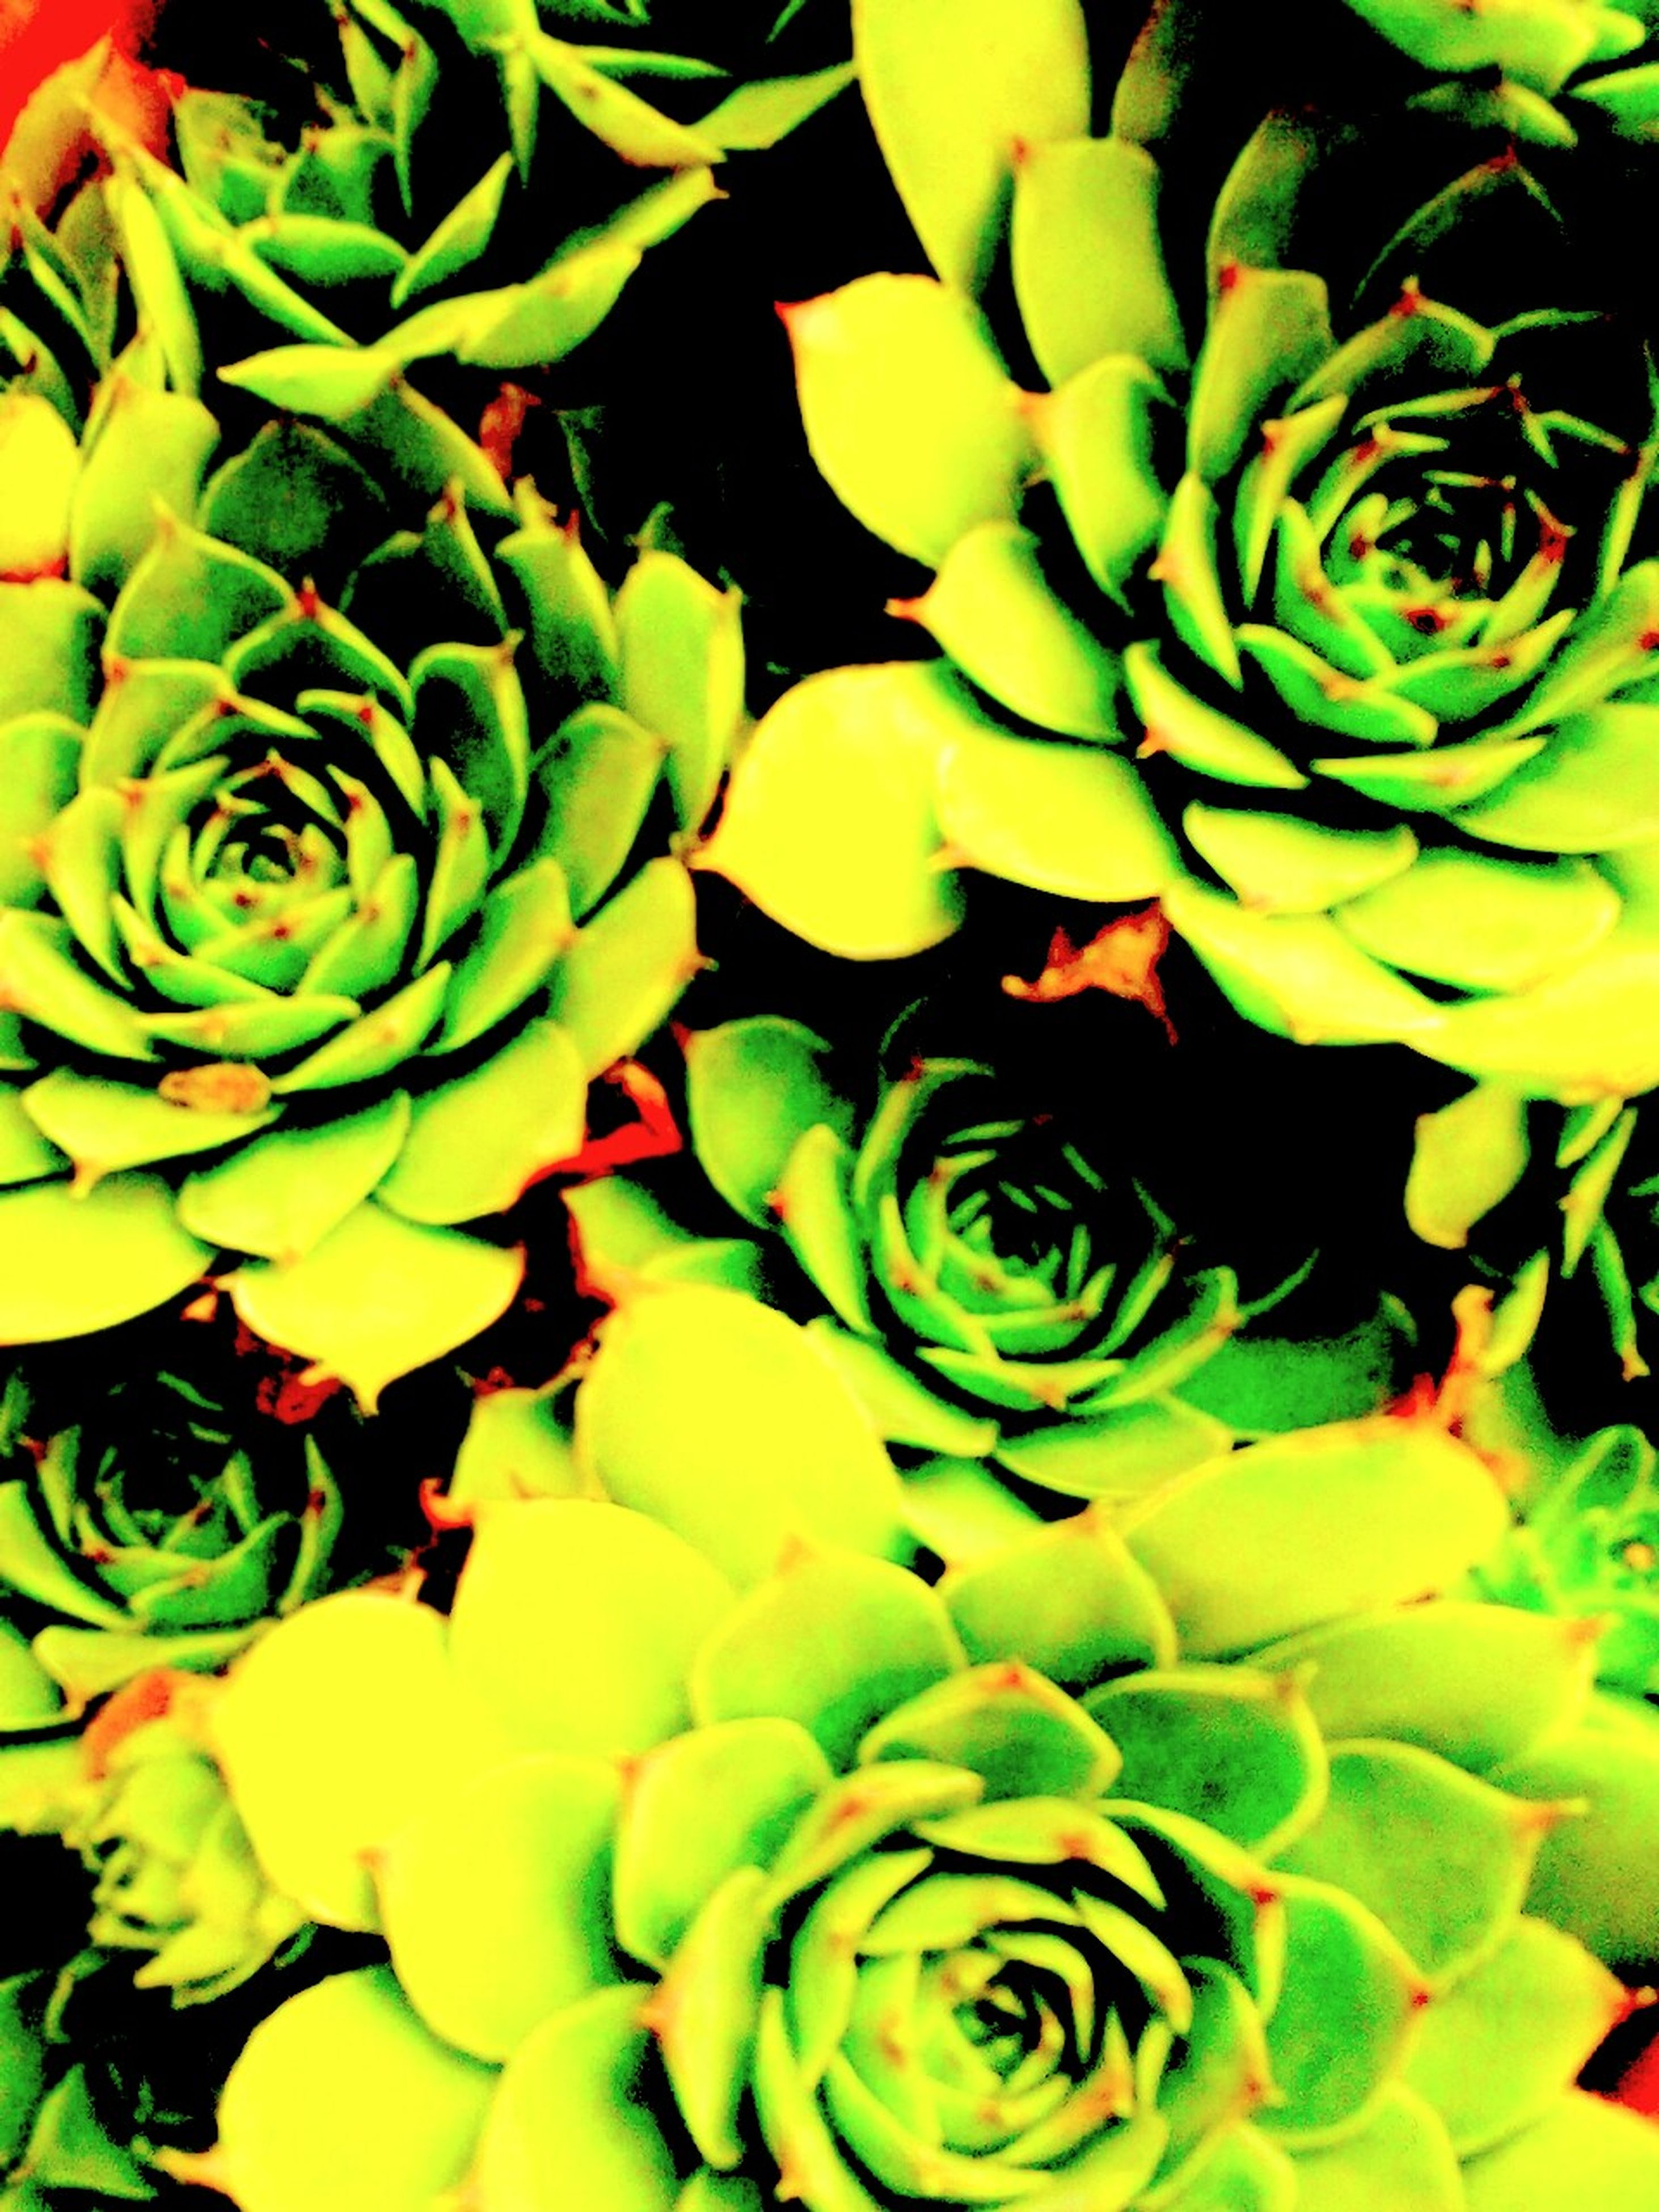 flower, freshness, growth, petal, fragility, beauty in nature, full frame, leaf, flower head, backgrounds, plant, nature, green color, close-up, natural pattern, rose - flower, blooming, yellow, high angle view, botany